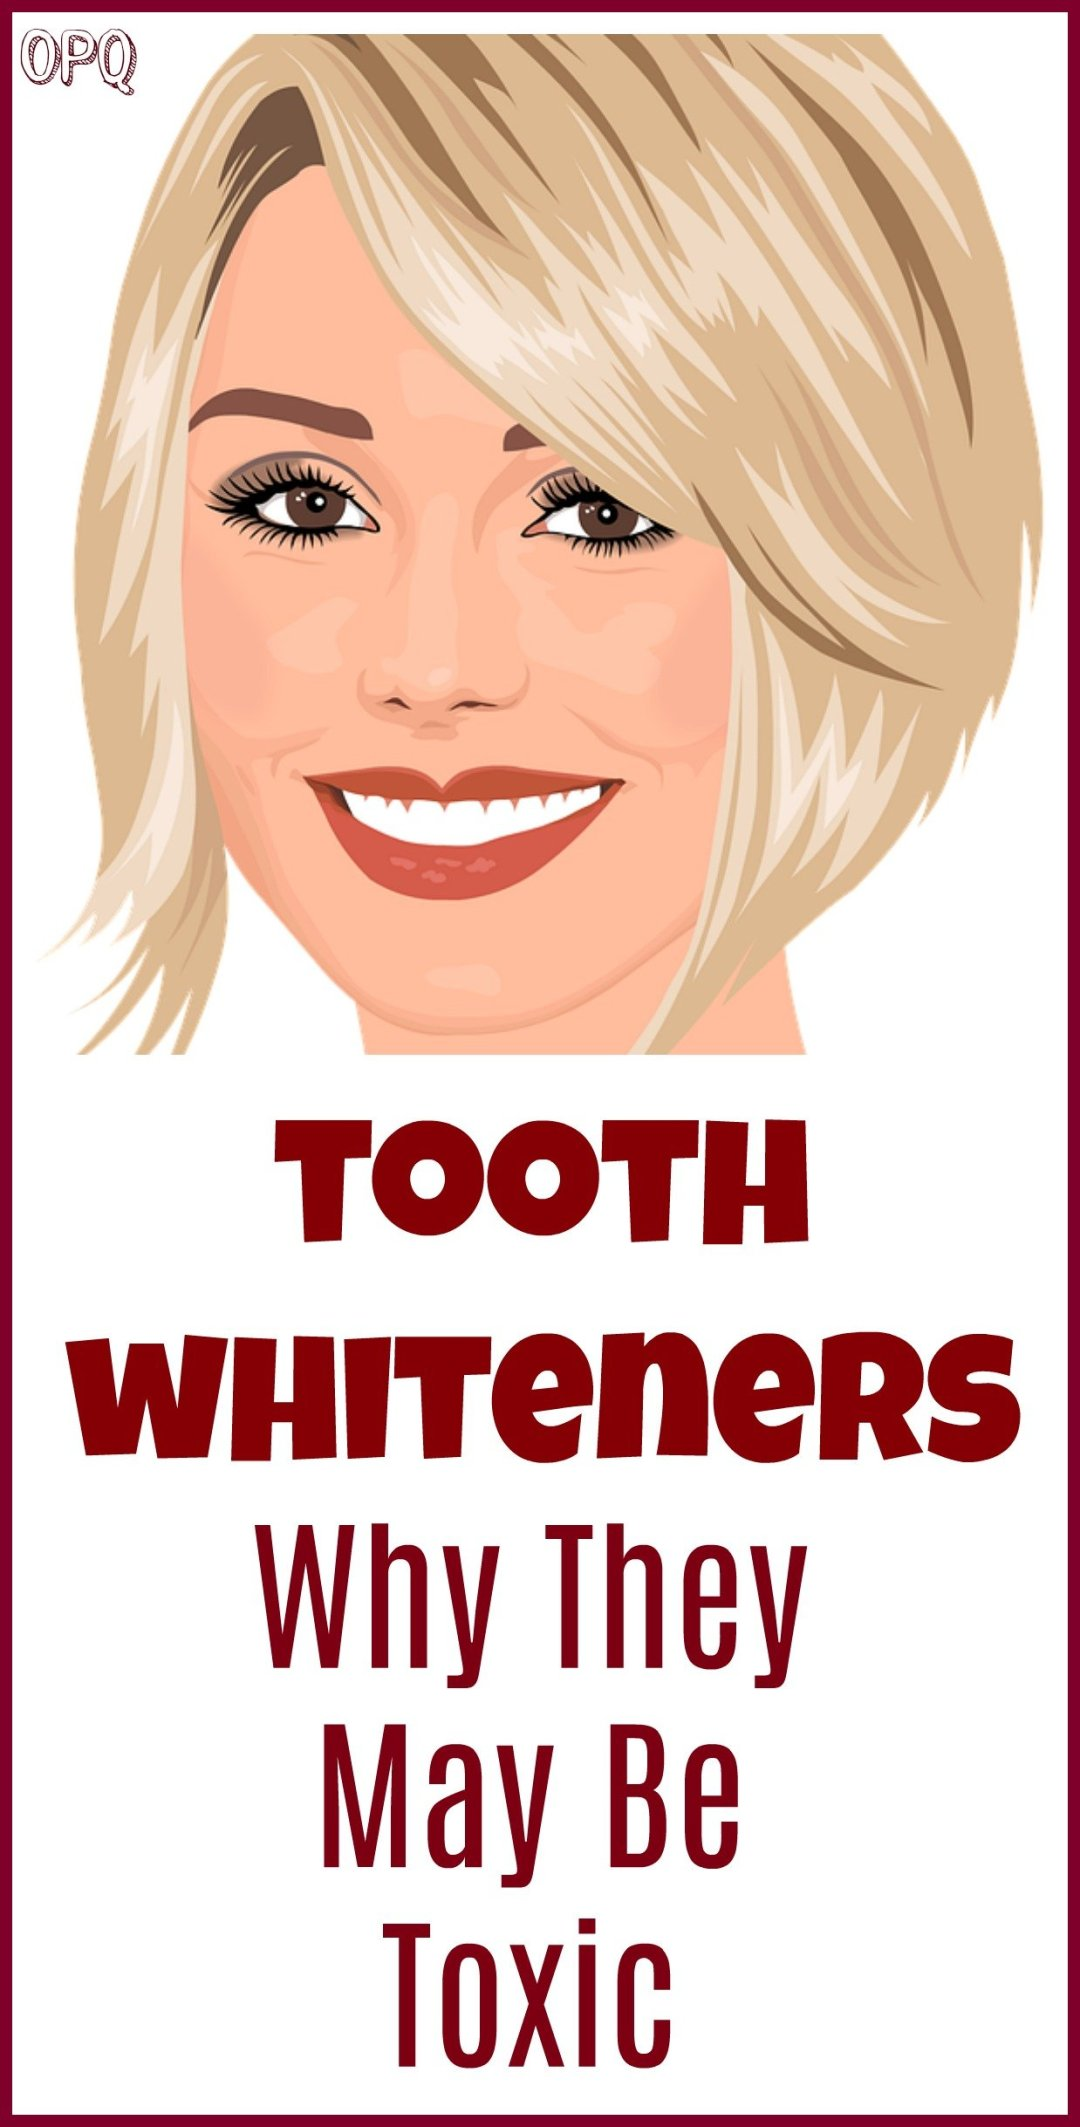 Is your tooth whitener toxic